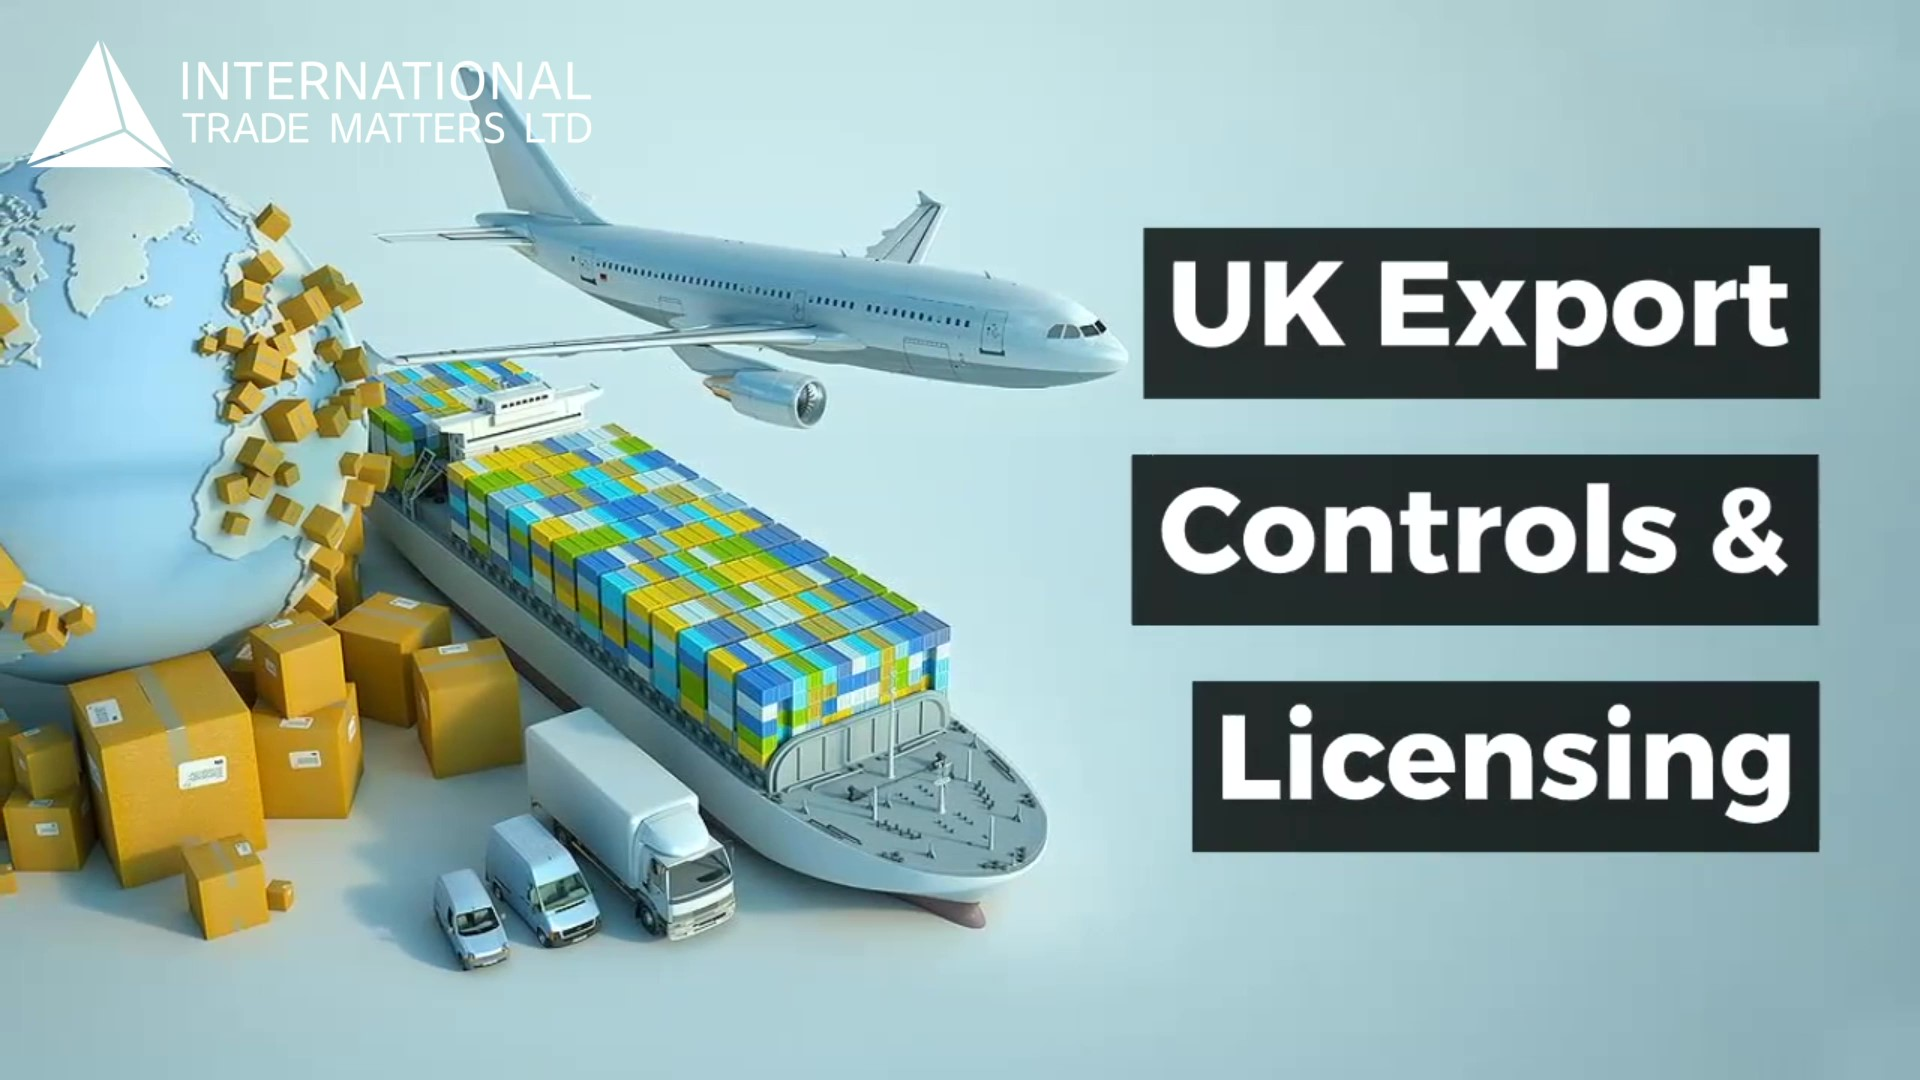 New Video on Export Controls and Licensing